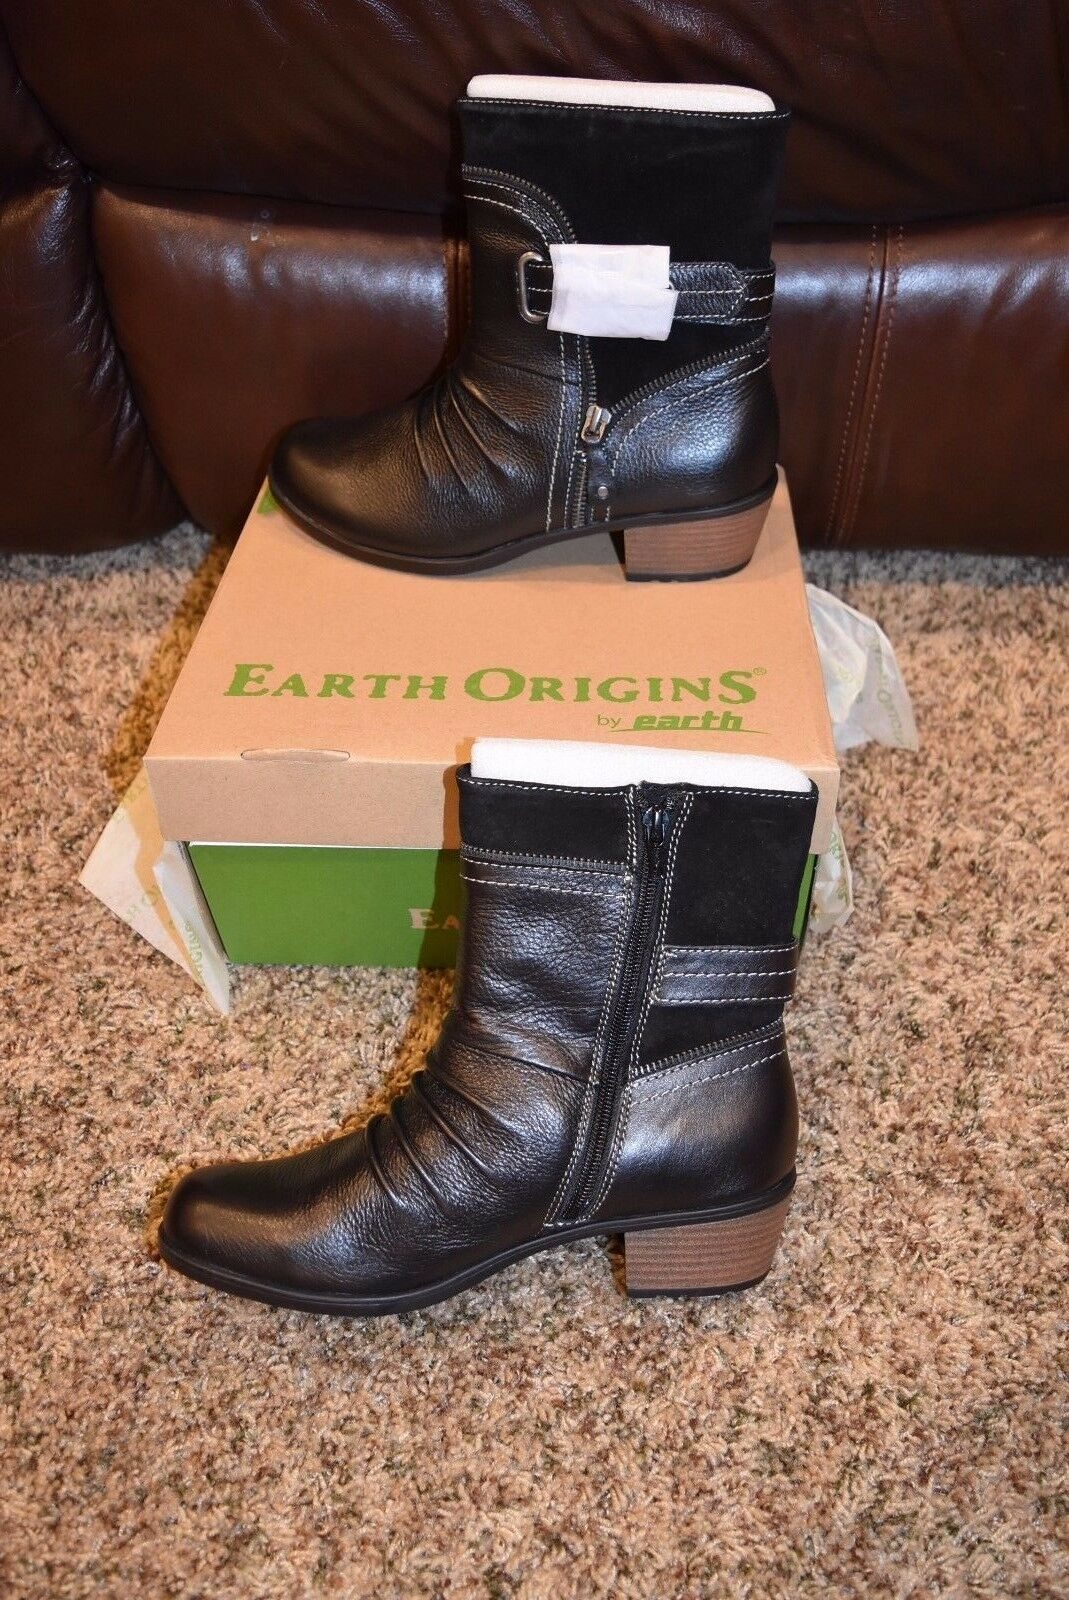 EARTH ORIGINS DOLLY Damenschuhe 9M BLACK SOFT MACCHIATO SUEDE & LEATHER ANKLE BOOTS